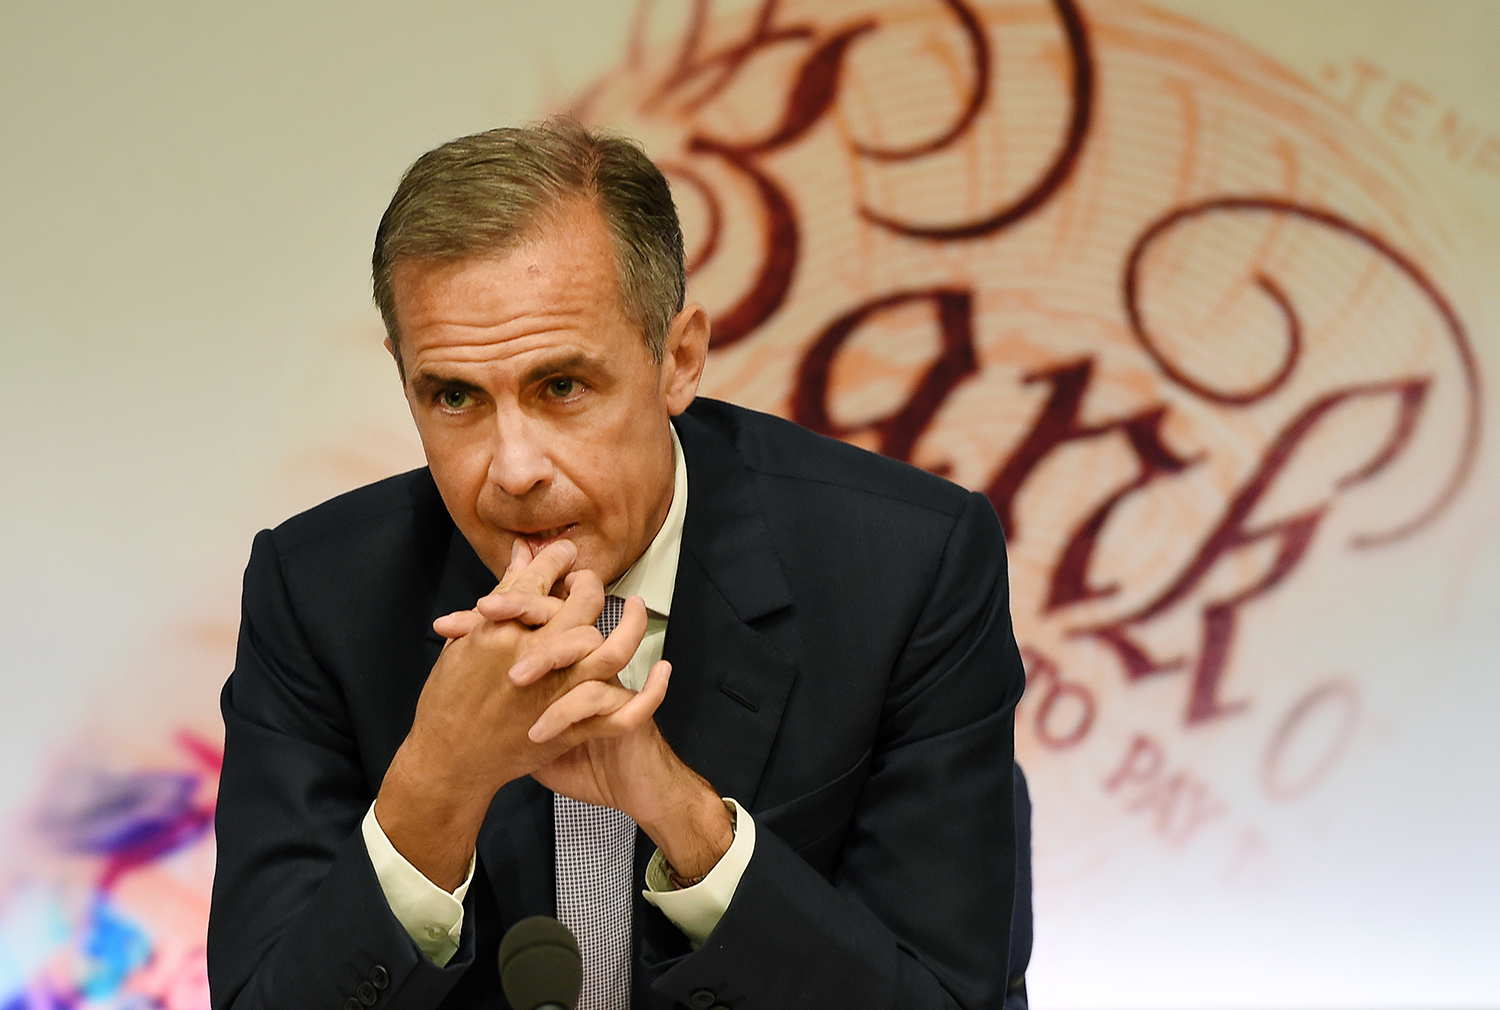 Bank of England signals steeper interest rate rises to reign in inflation